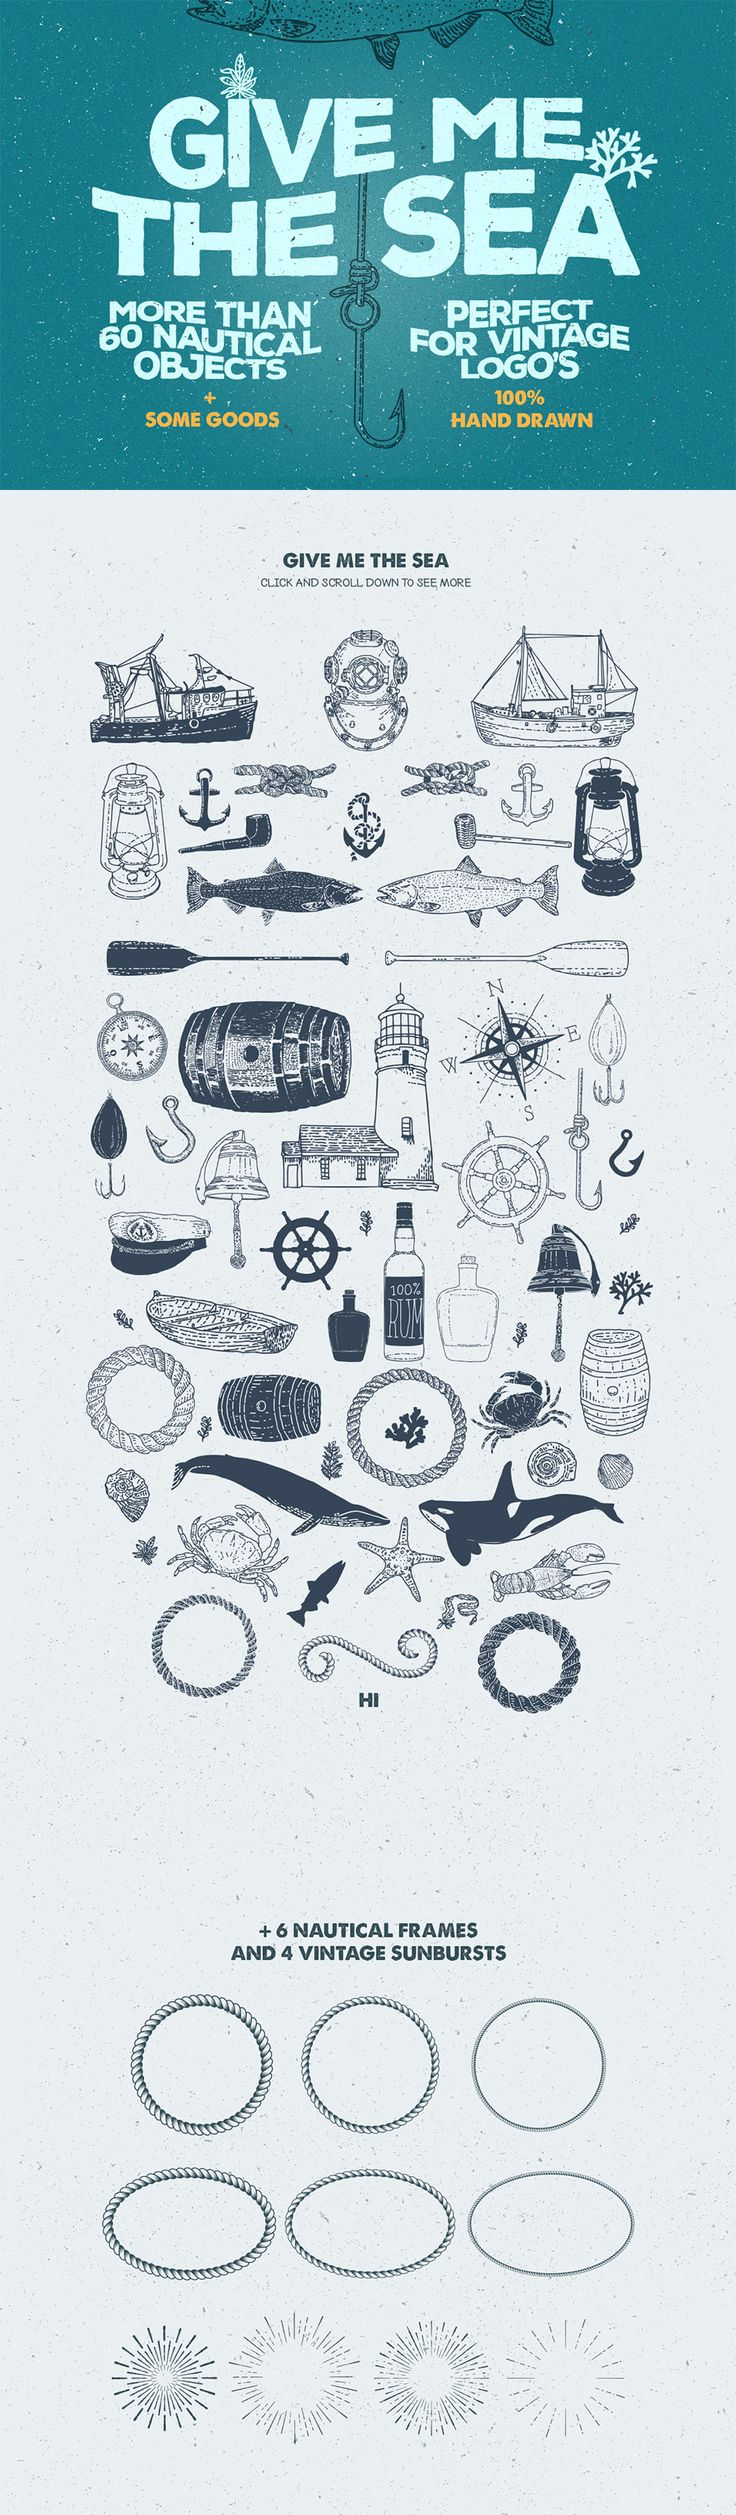 The Comprehensive, Creative Vectors Bundle (1000s of Varied Vectors) Just $29